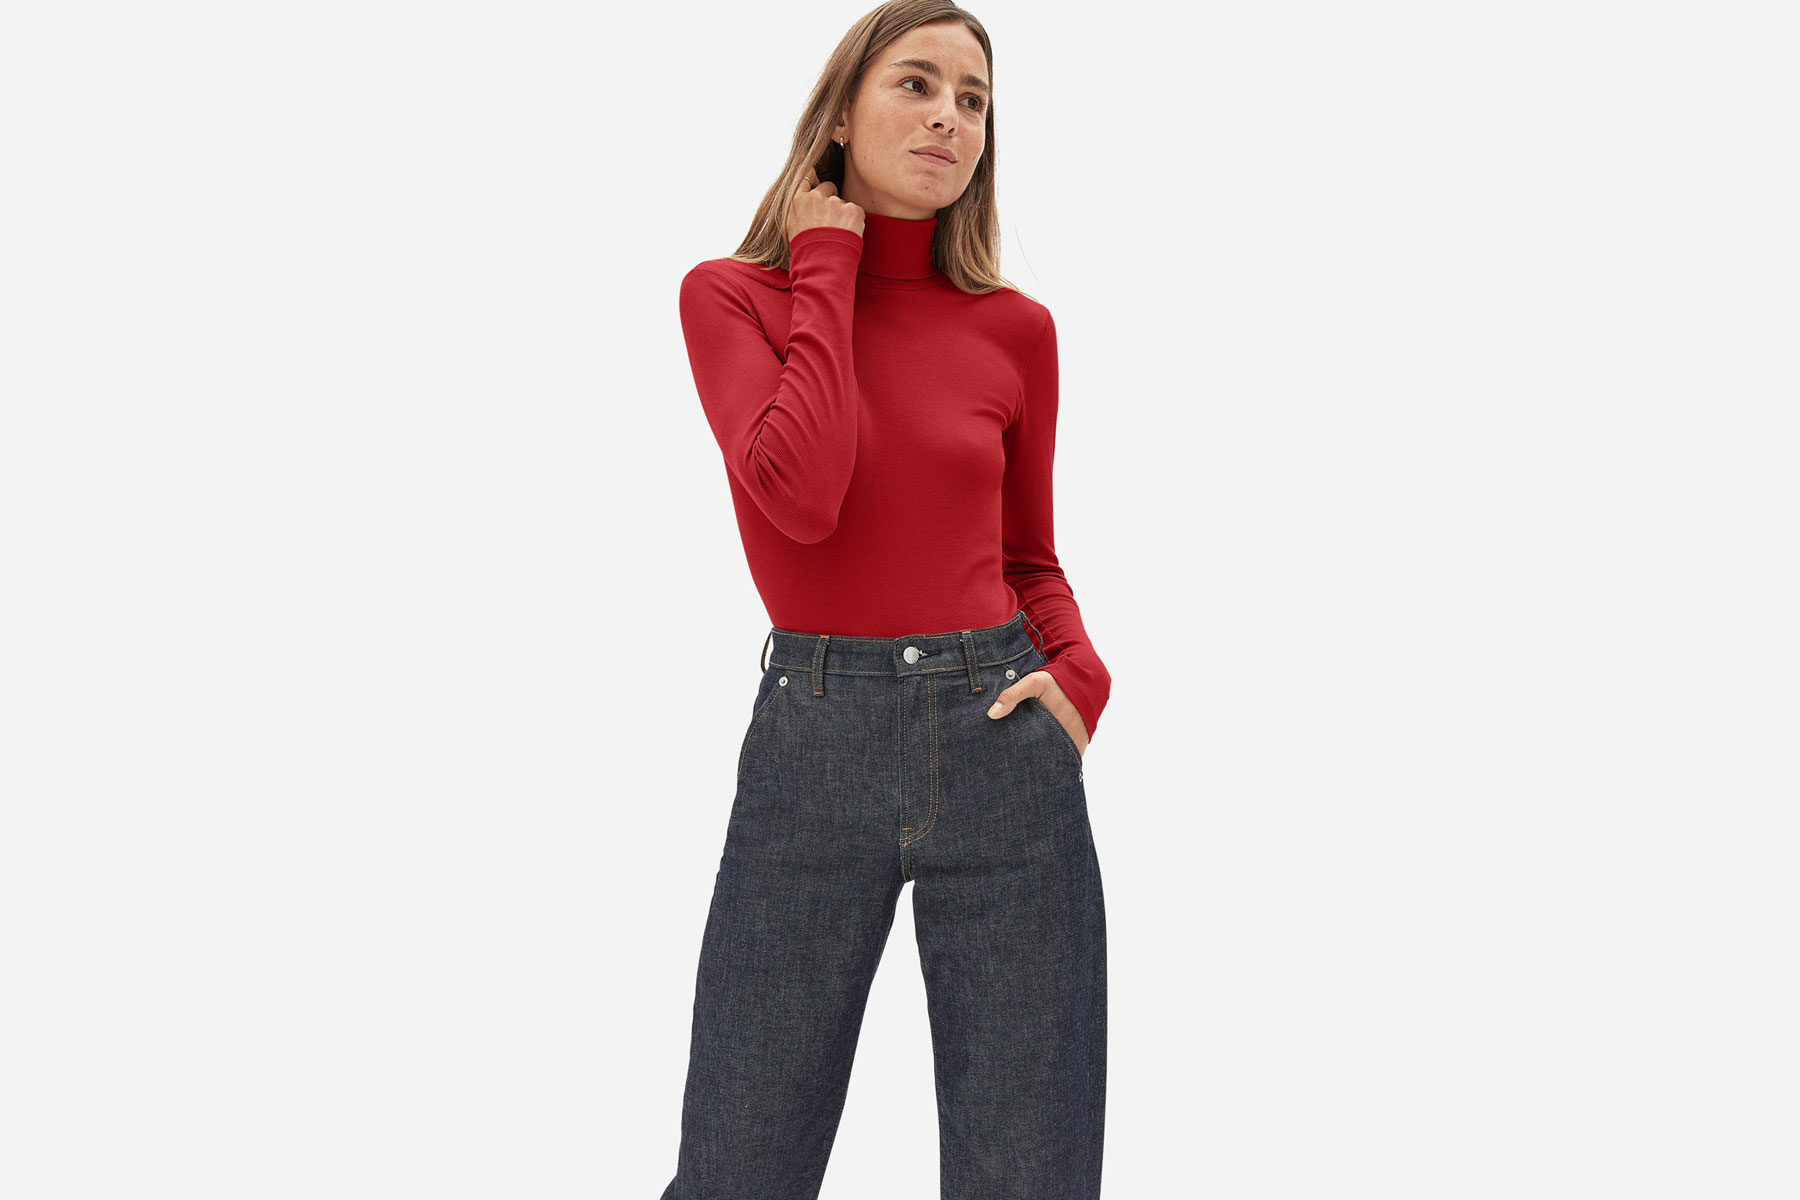 Woman wearing red cotton turtleneck